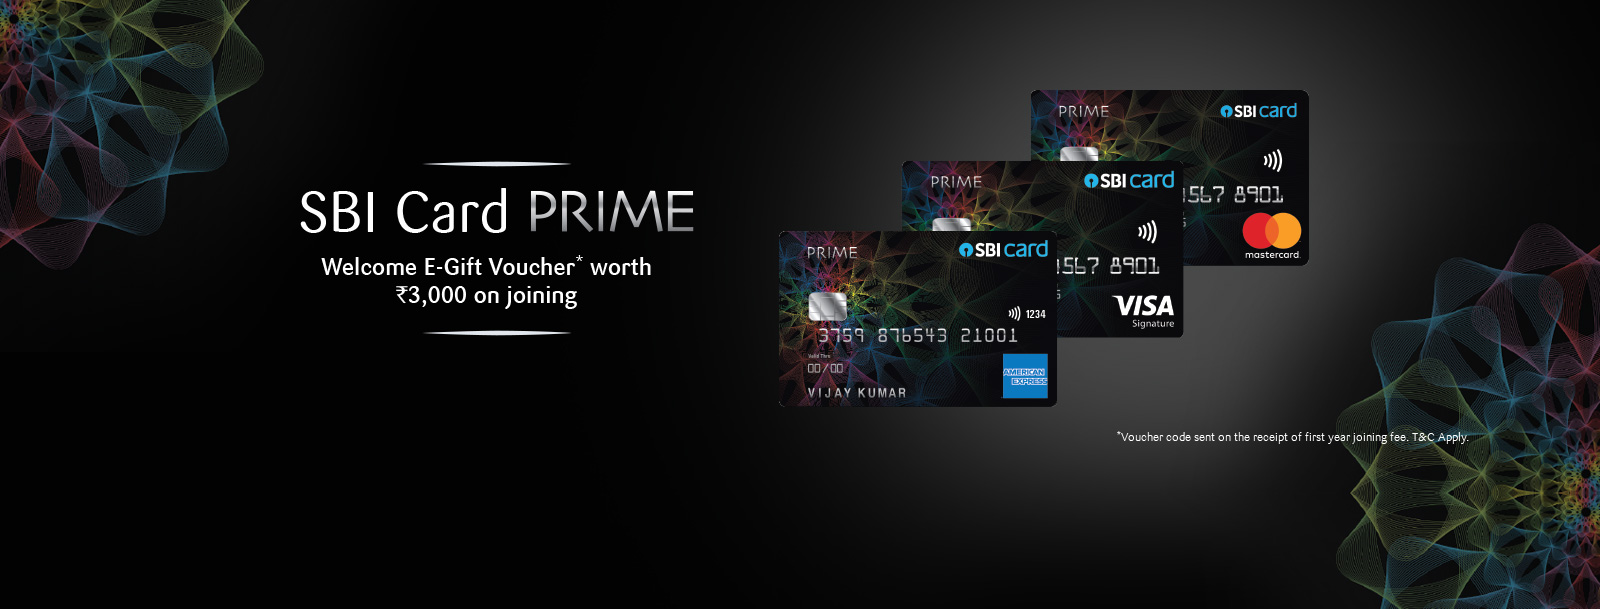 SBI Prime Credit Card - Privileges & Features - Apply Now | SBI Card